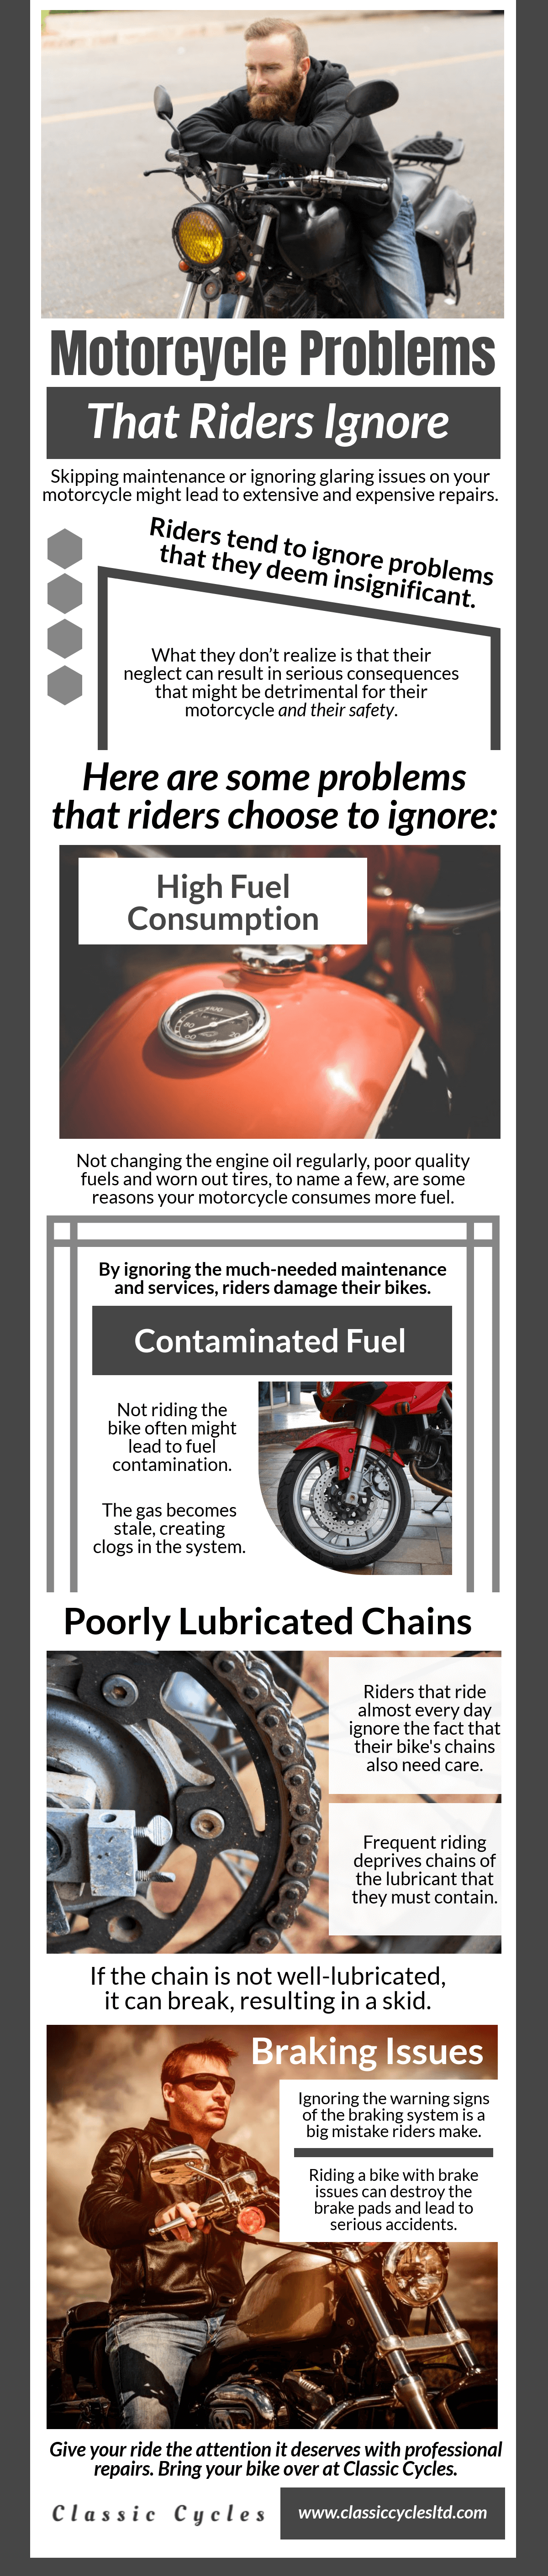 Motorcycle Problems That Riders Ignore.png